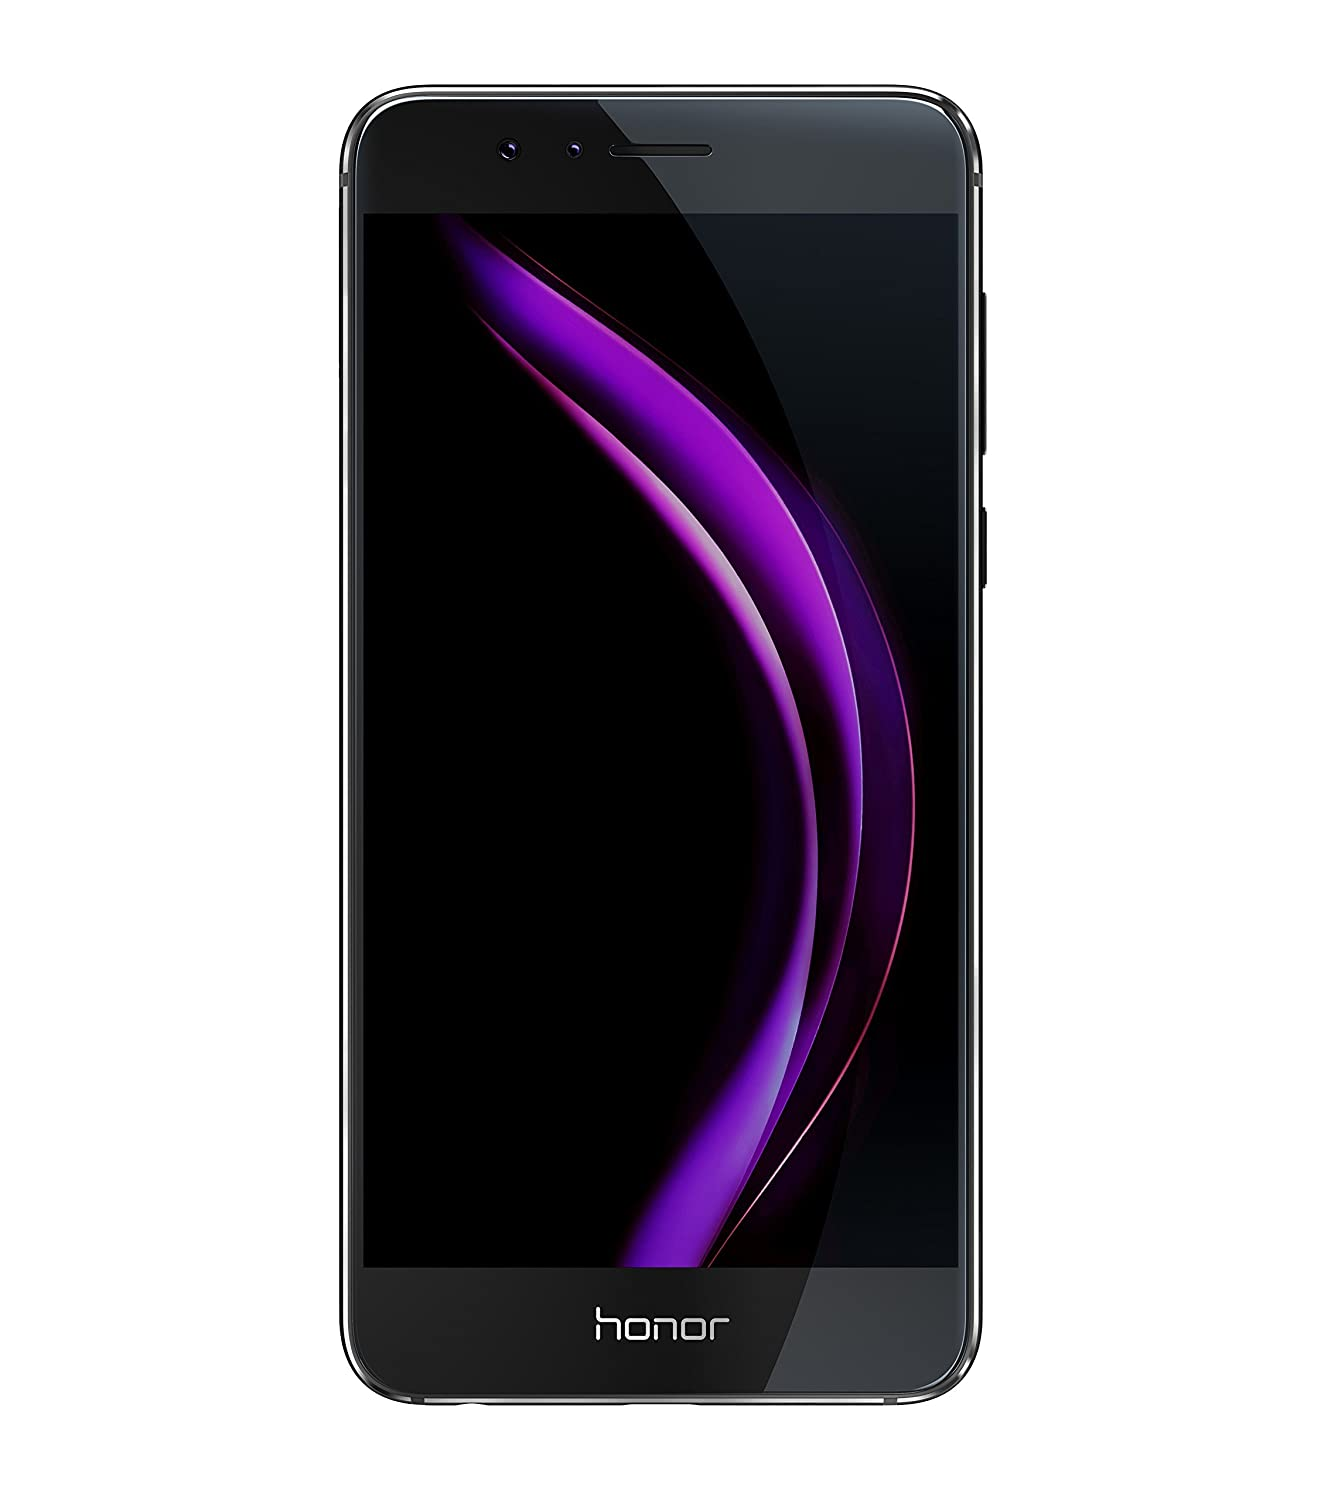 Honor 8 Smartphone amazon